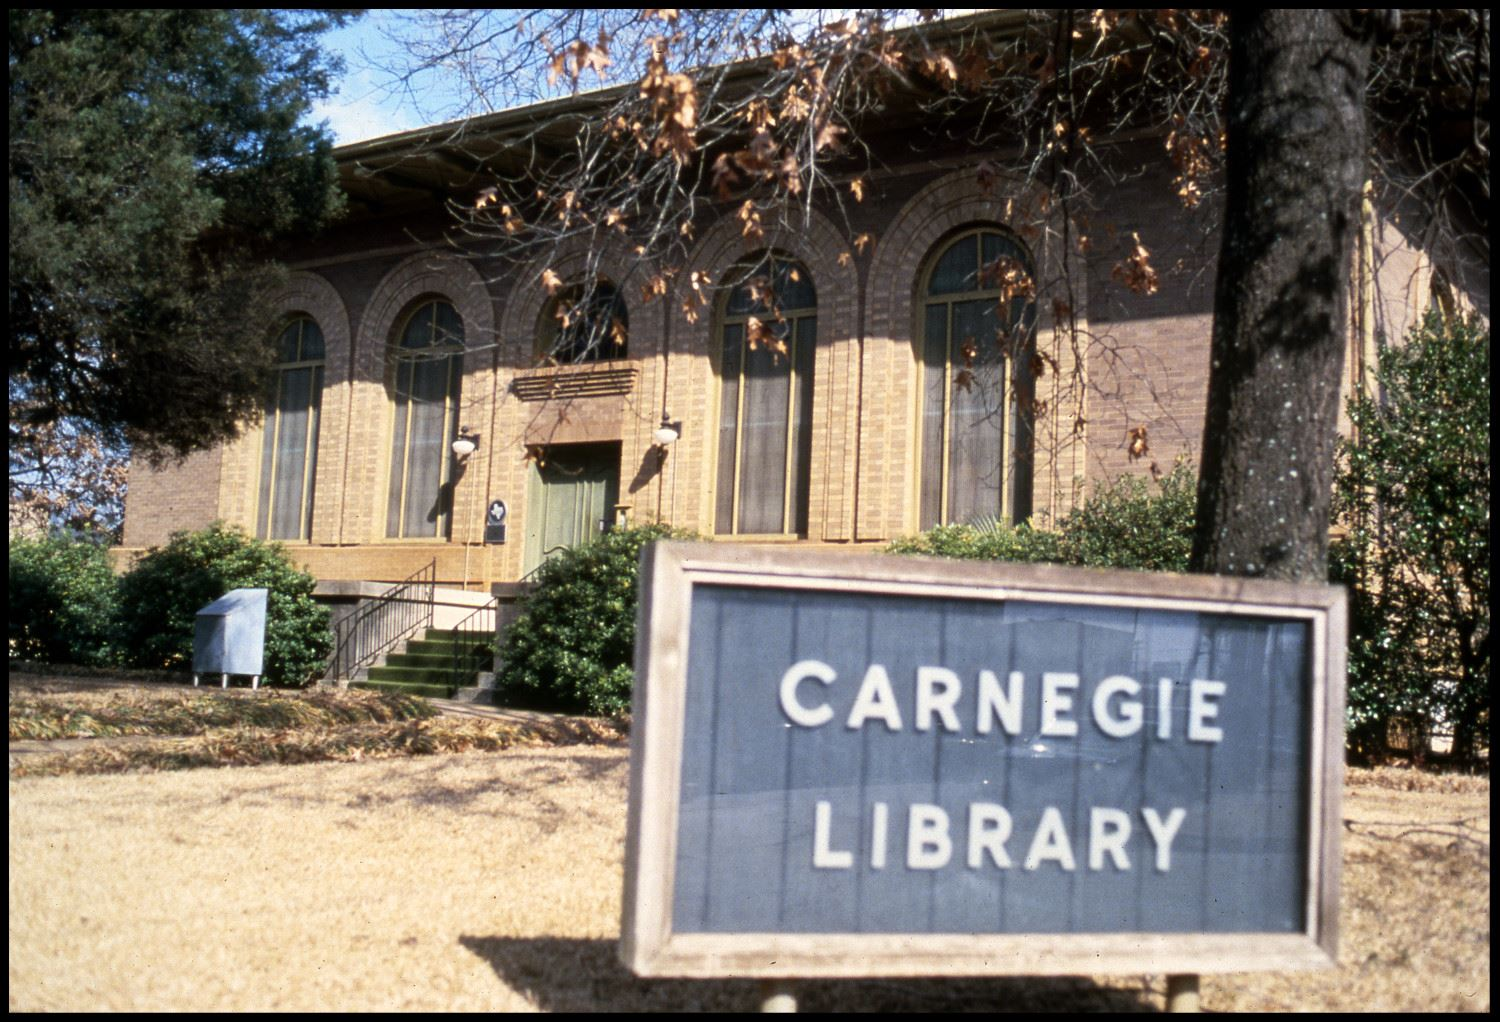 Carnegie Library - 1970s